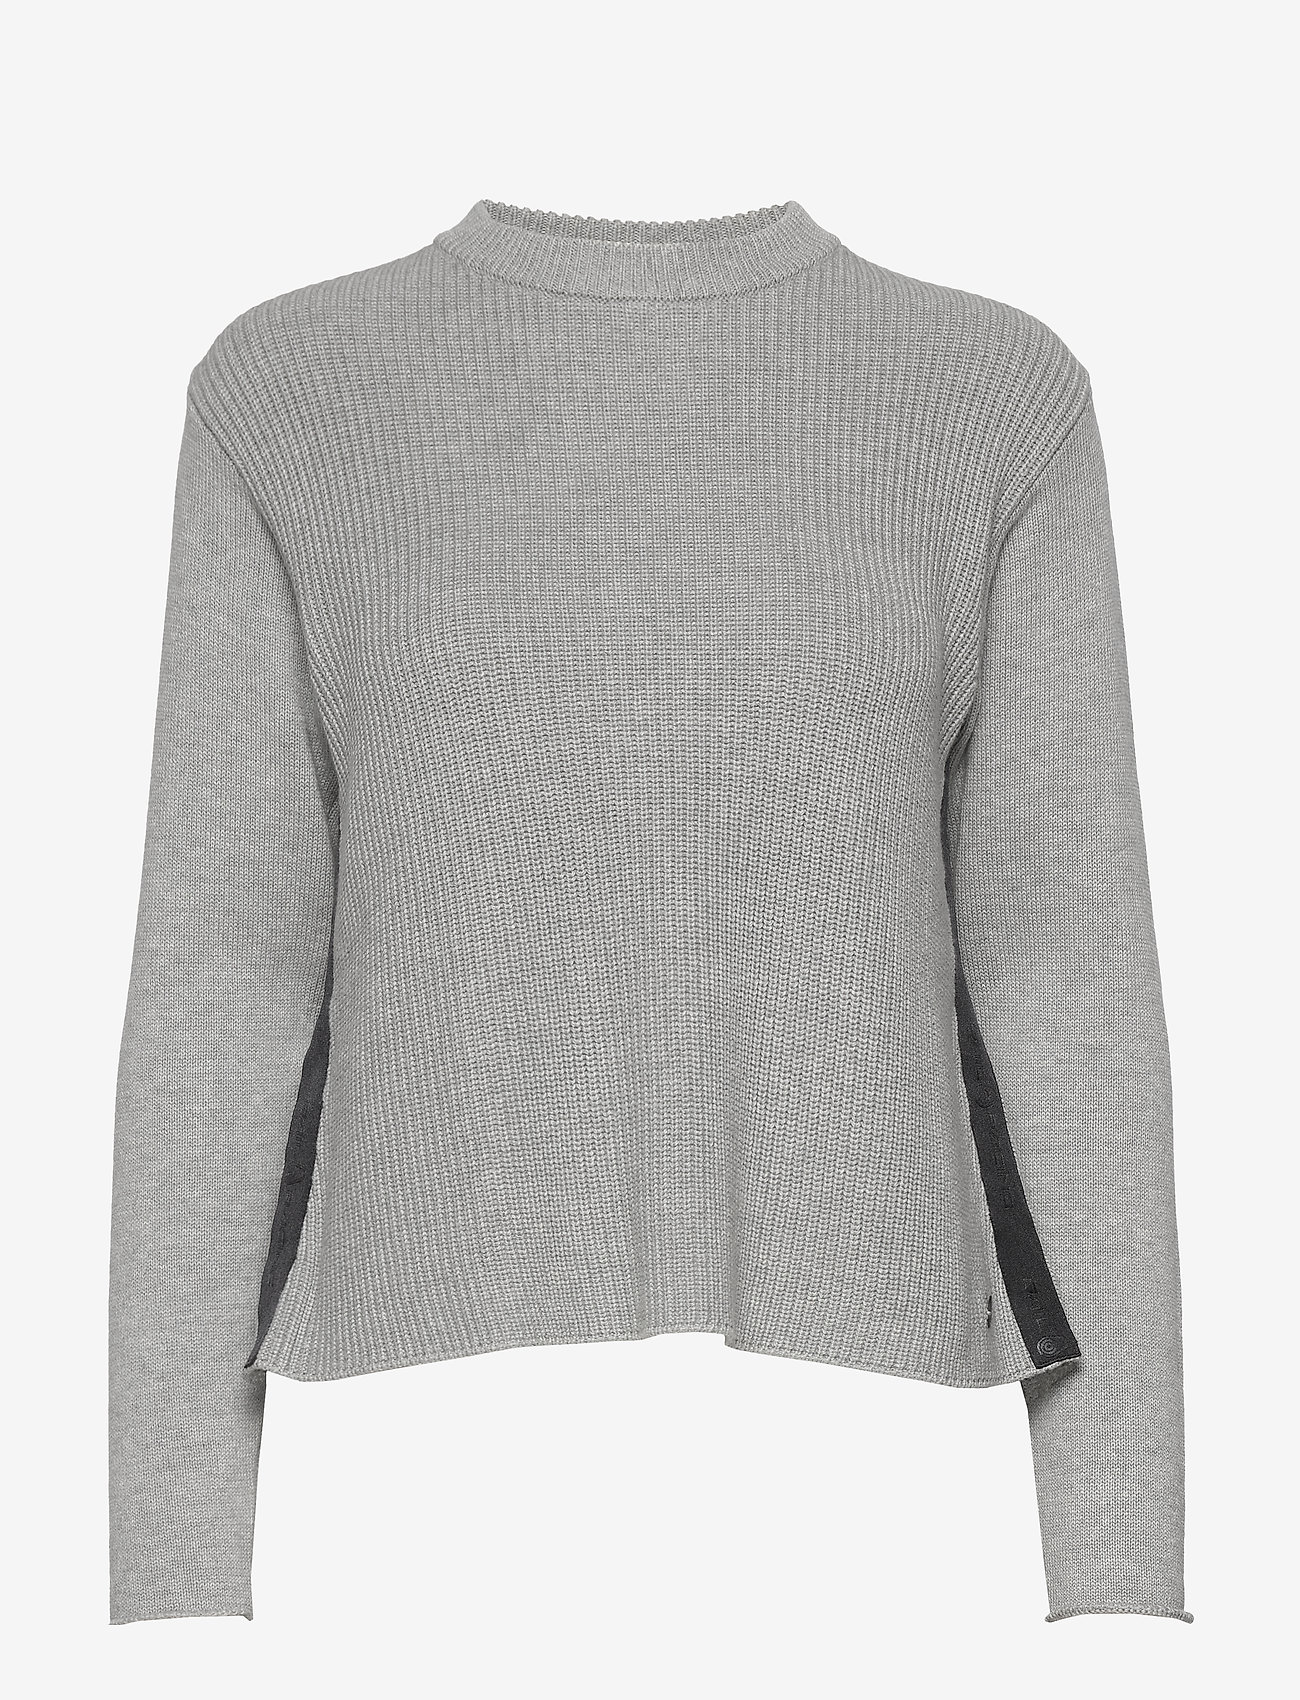 Sail Racing - W RACE KNITTED SLIT - jumpers - grey melange - 0